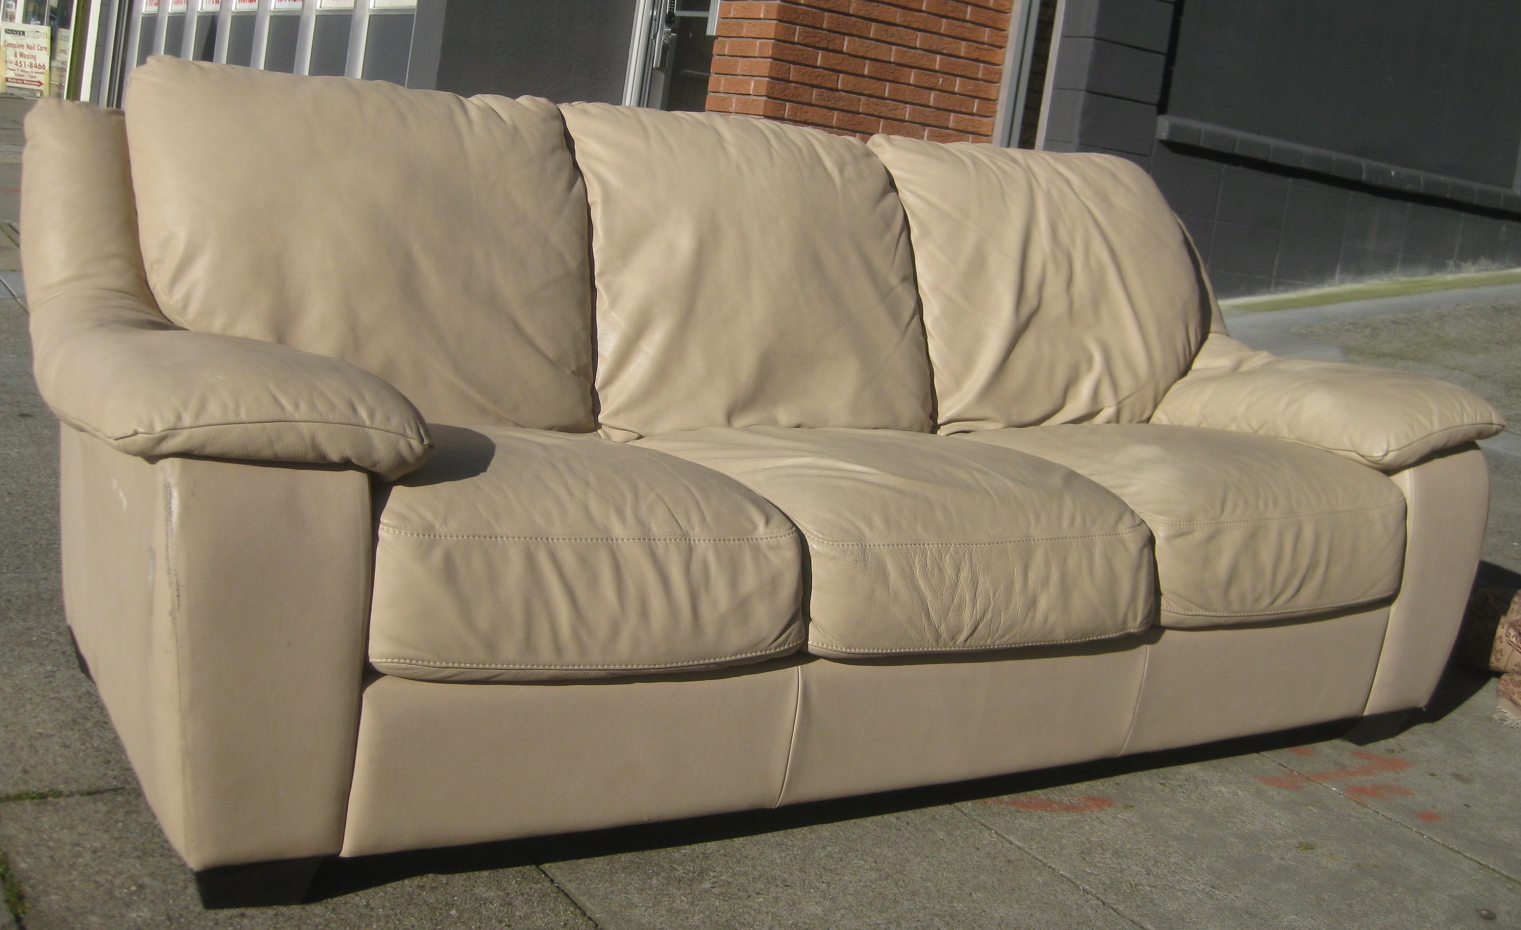 UHURU FURNITURE & COLLECTIBLES: SOLD - Off-White Leather ...